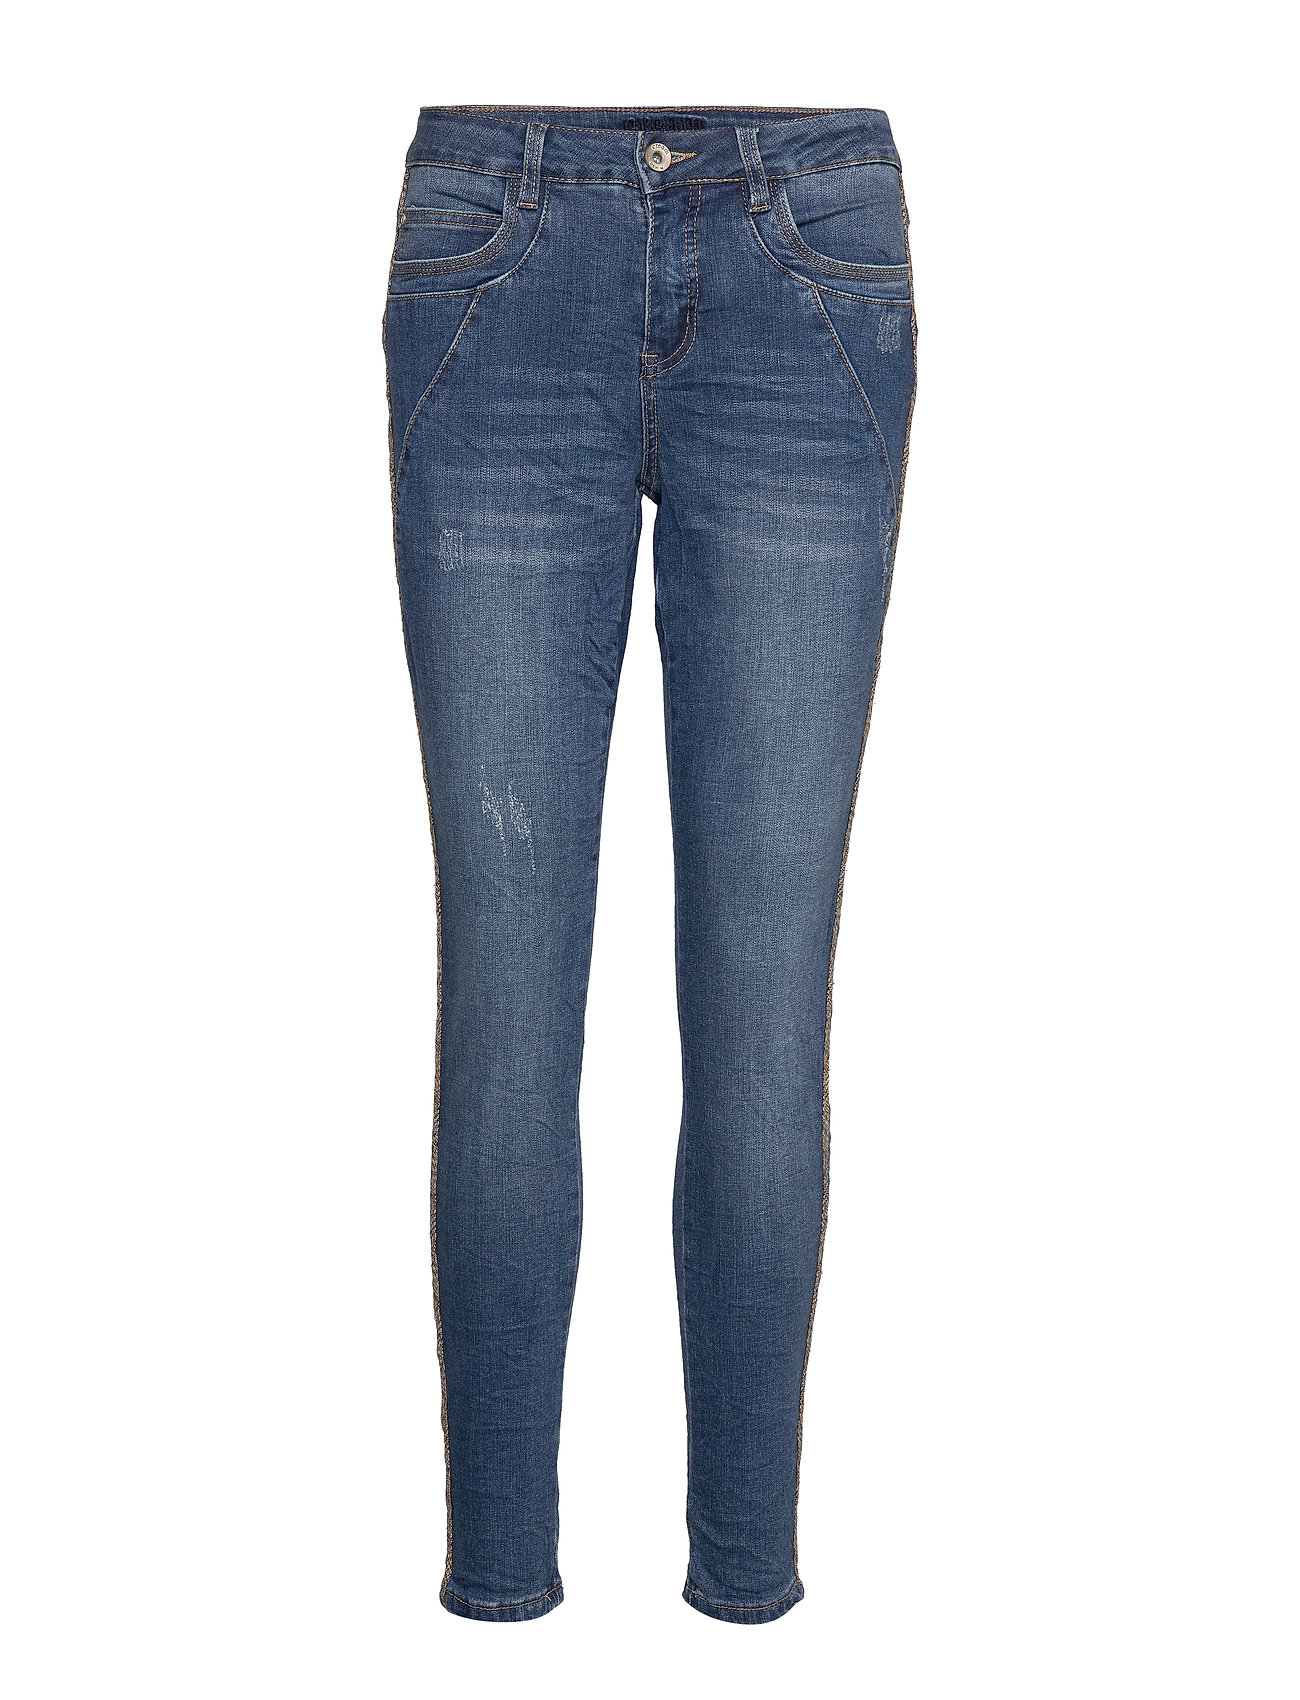 Cream HostaCR Jeans - Baiily Fit - CLEAR BLUE DENIM